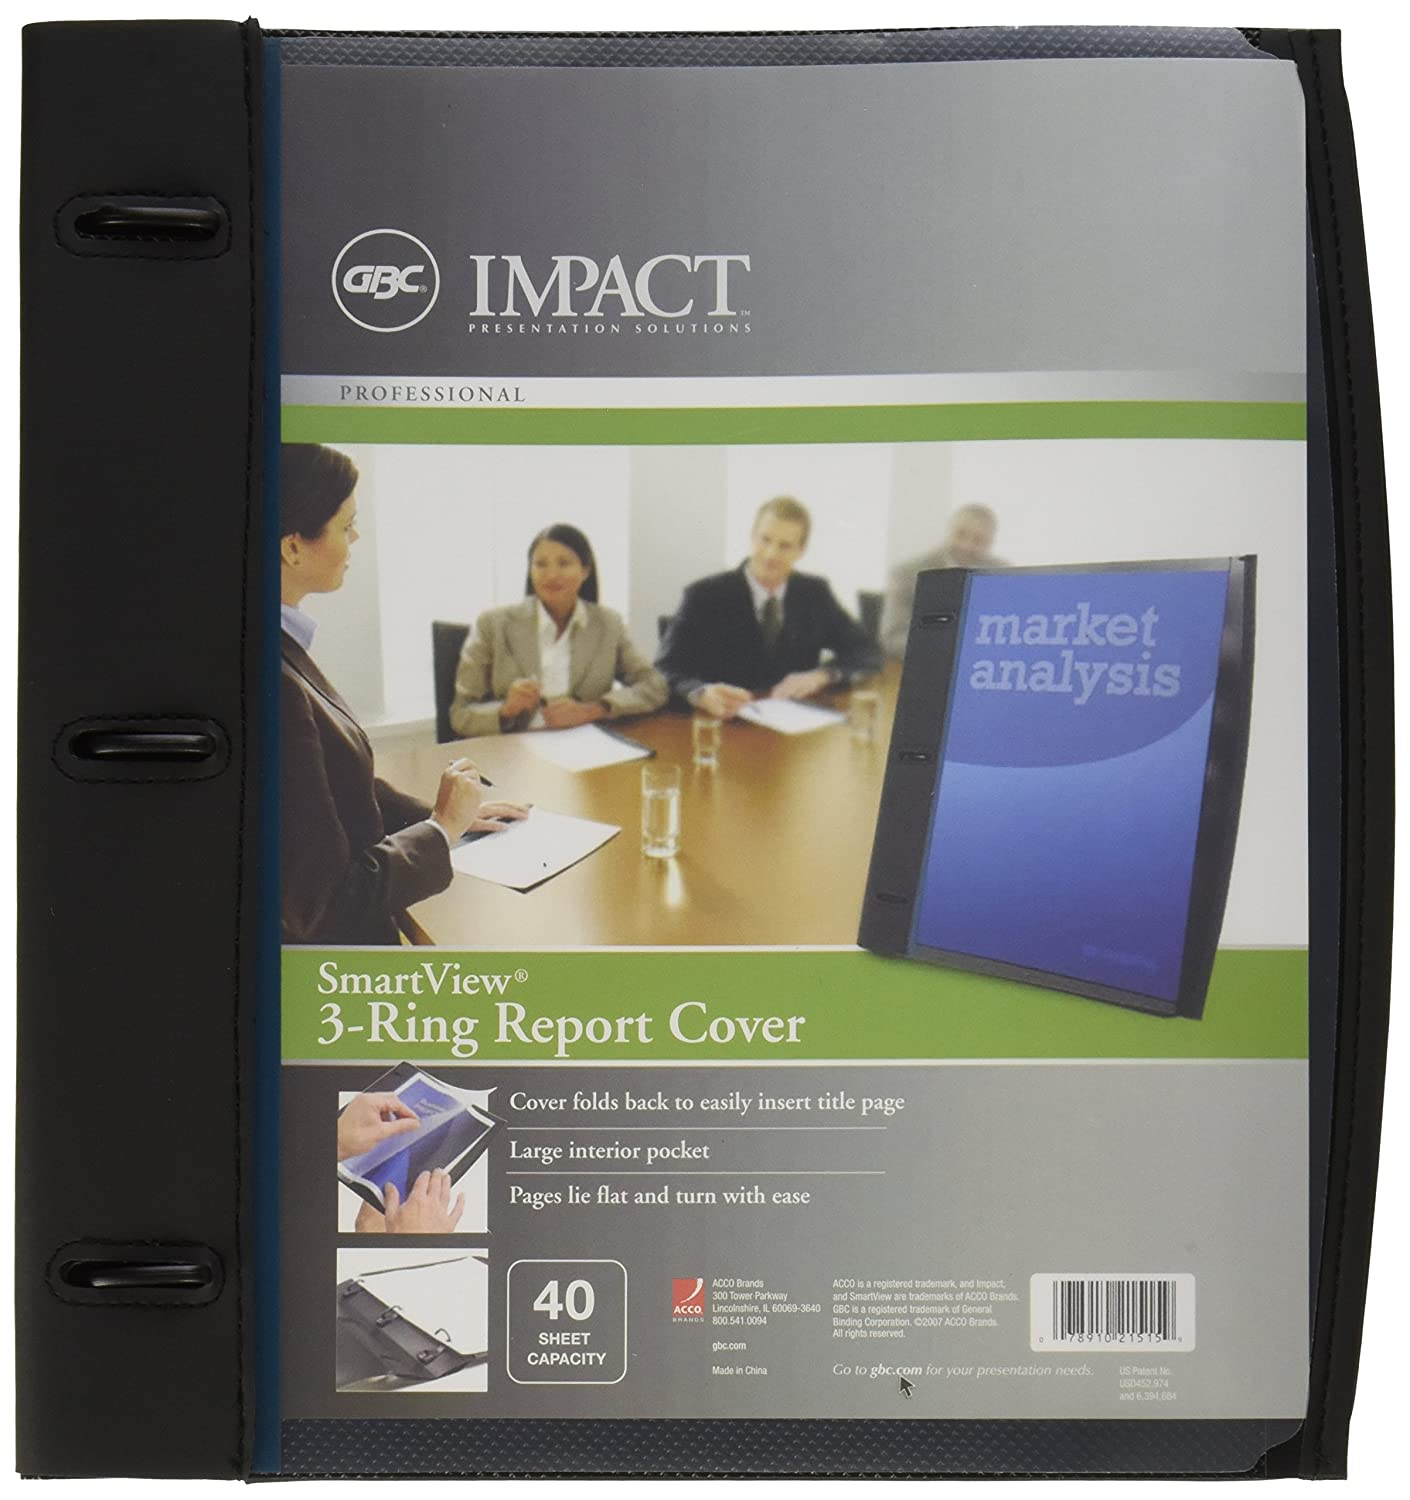 com gbc smart view ring report cover x inches com gbc smart view 3 ring report cover 11 5 x 11 inches 40 sheet capacity black w21515b business report covers office products